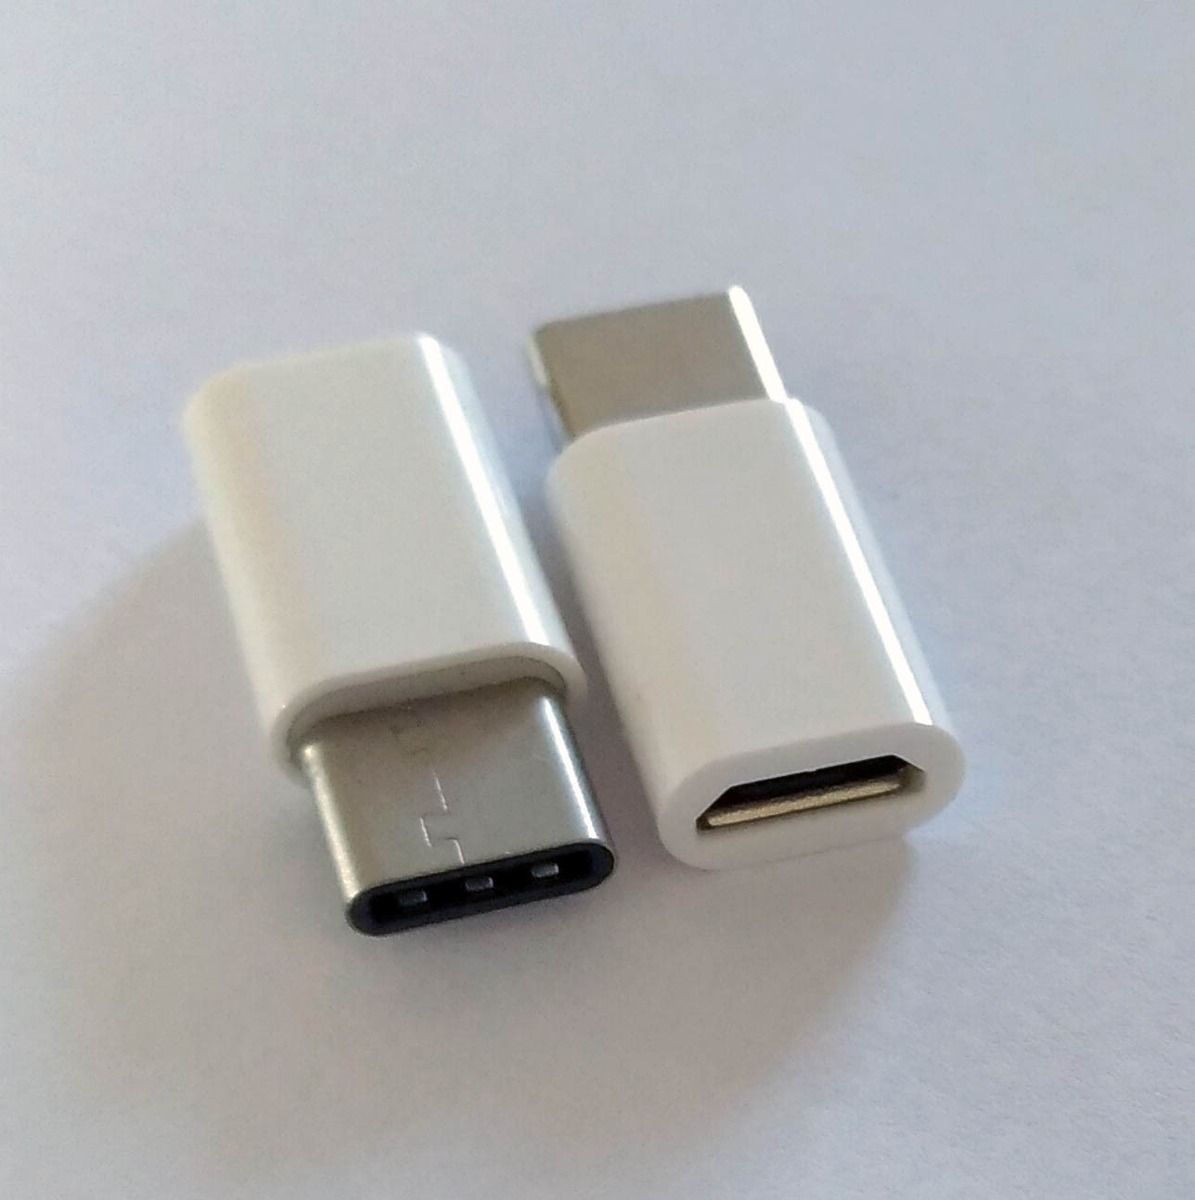 Adaptador type c macho para micro usb femea conversor note for Adaptador micro usb a usb c